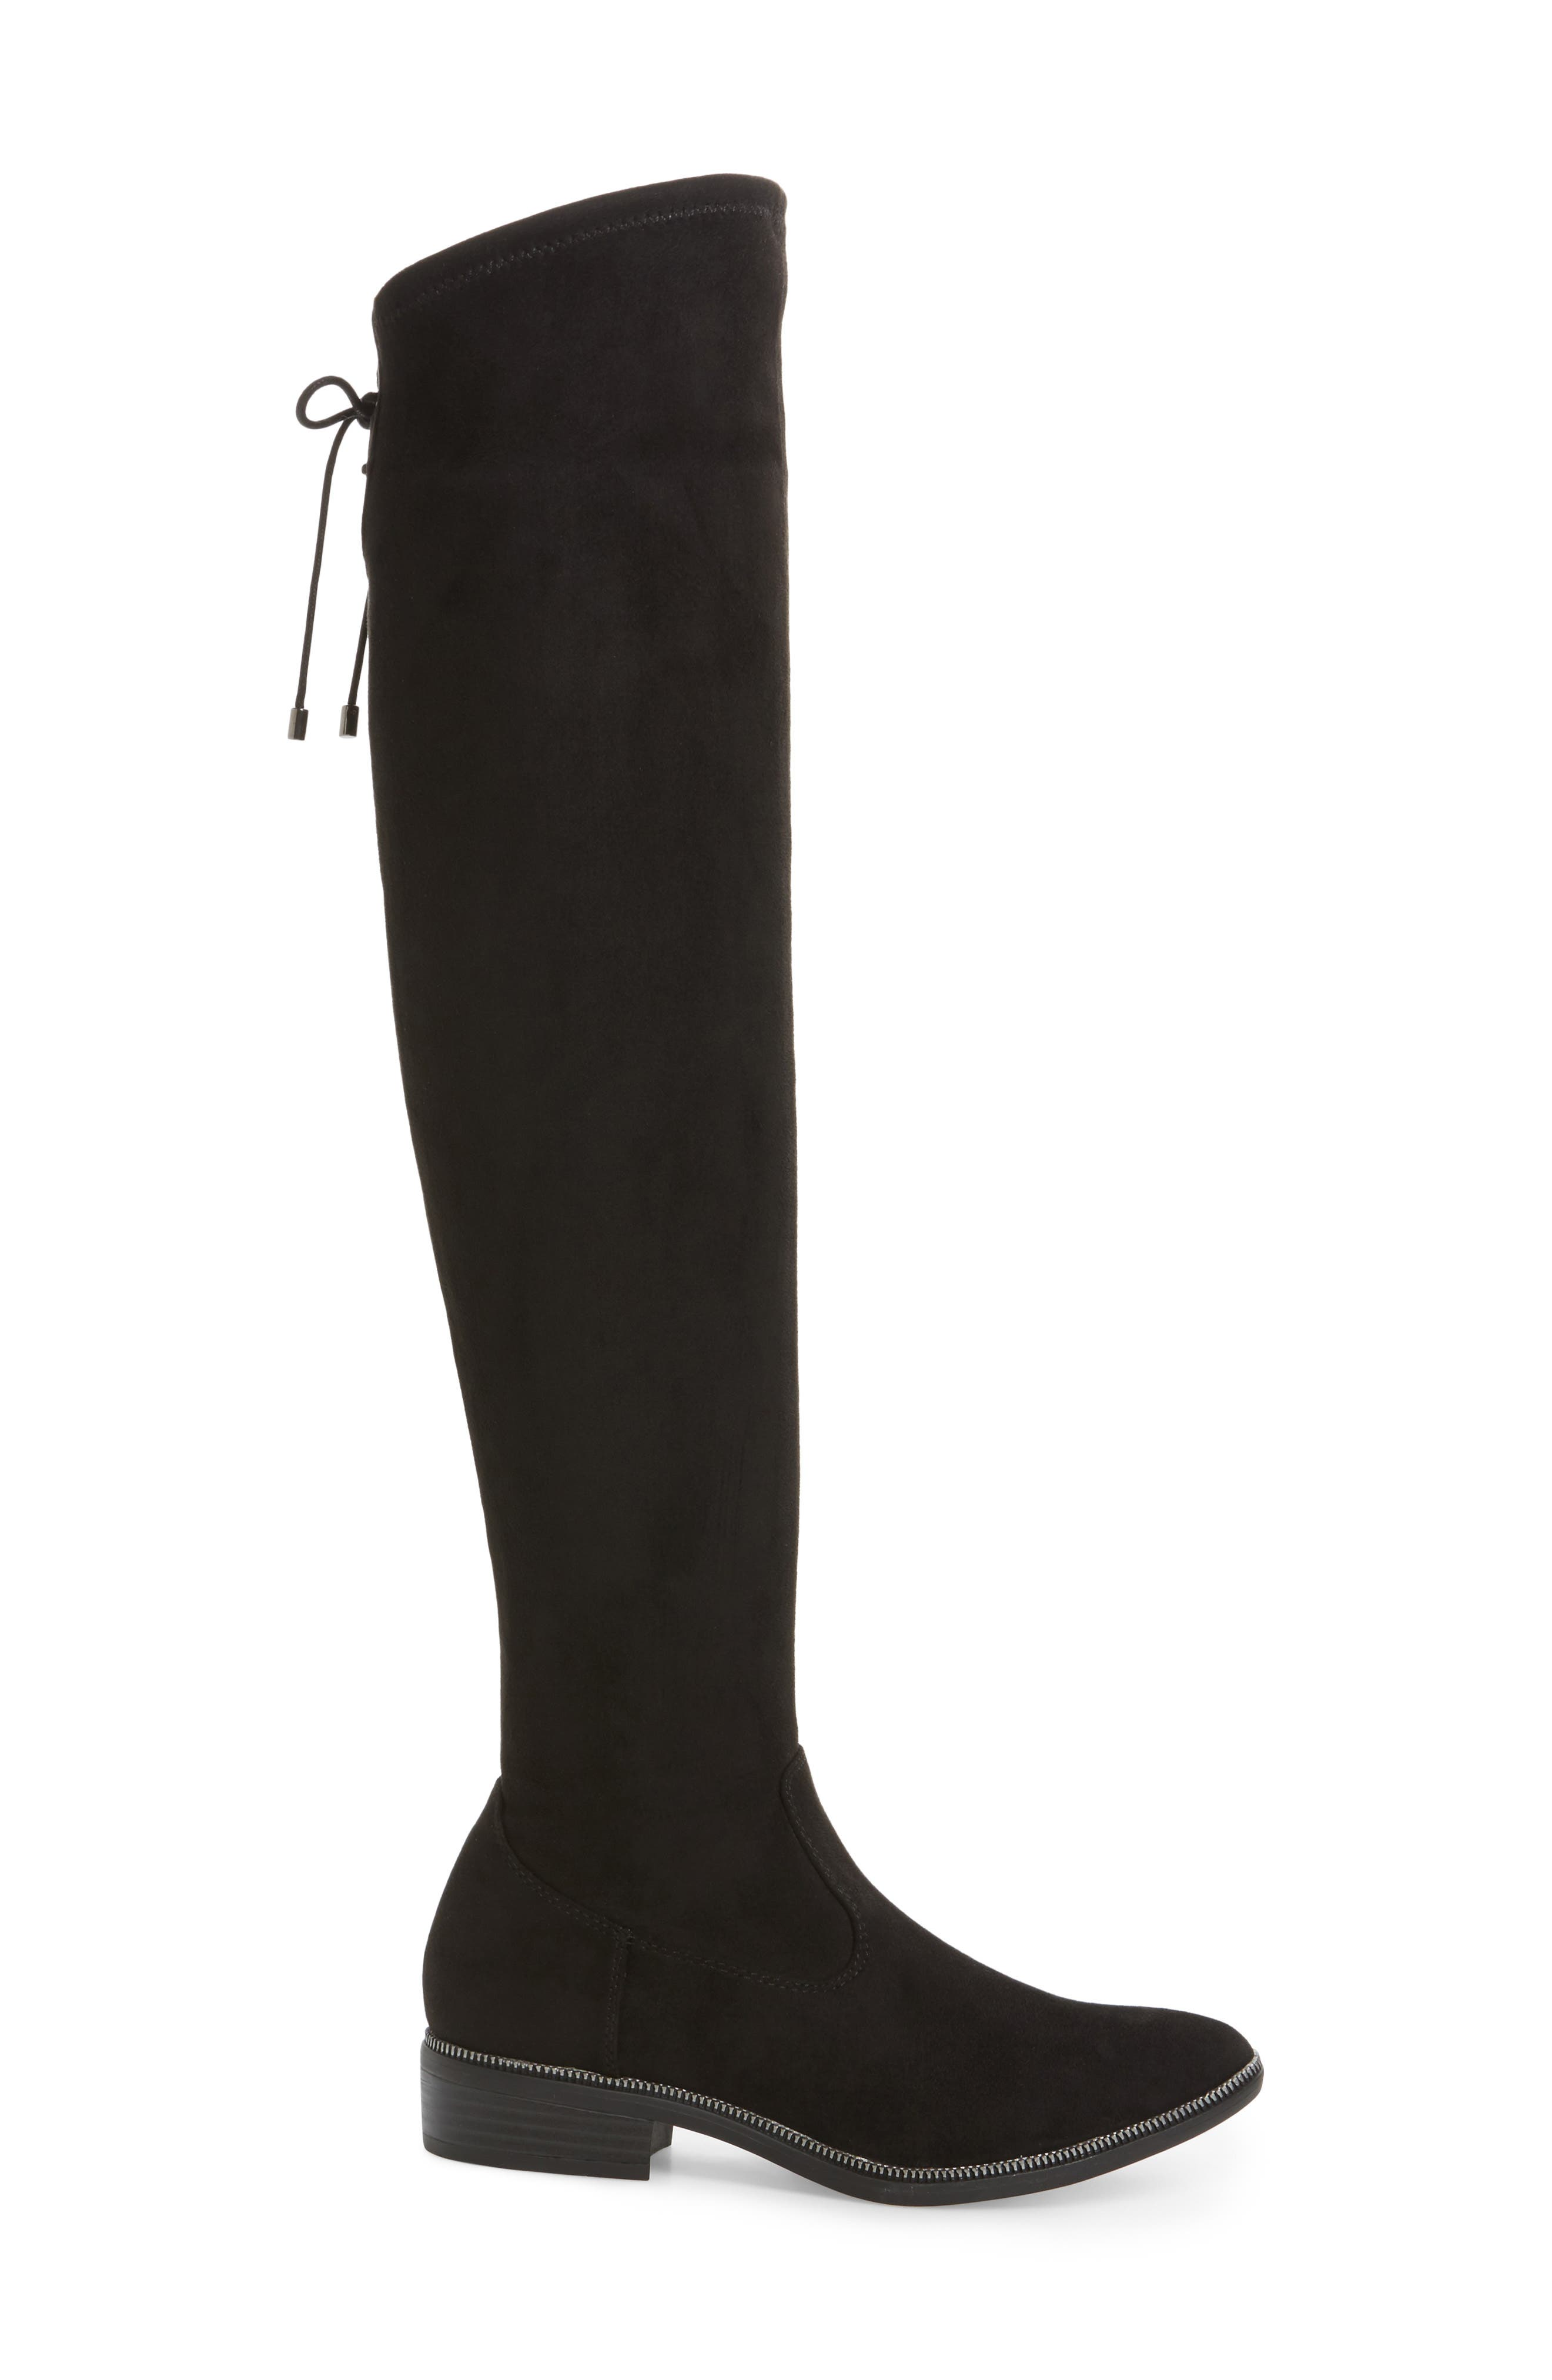 Phanie Over the Knee Stretch Boot,                             Alternate thumbnail 3, color,                             001